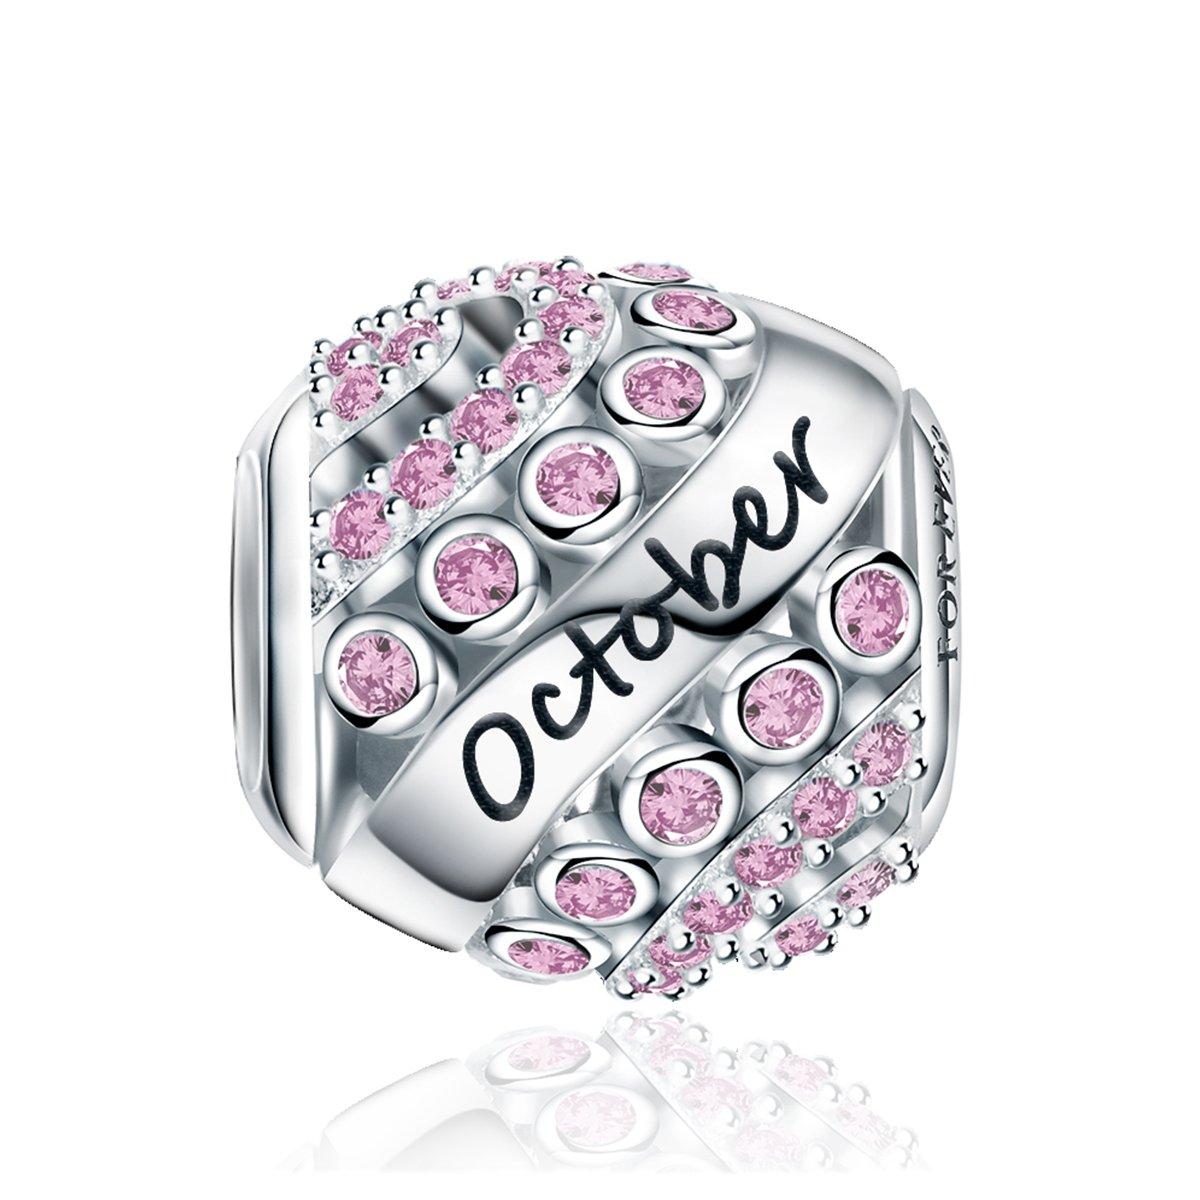 FOREVER QUEEN October Birthstone Charms for Pandora Charms Bracelet- 925 Sterling Silver Bead Openwork Charms, Happy Birthday Charms for Bracelet and Necklace FQ0004-10 by FOREVER QUEEN